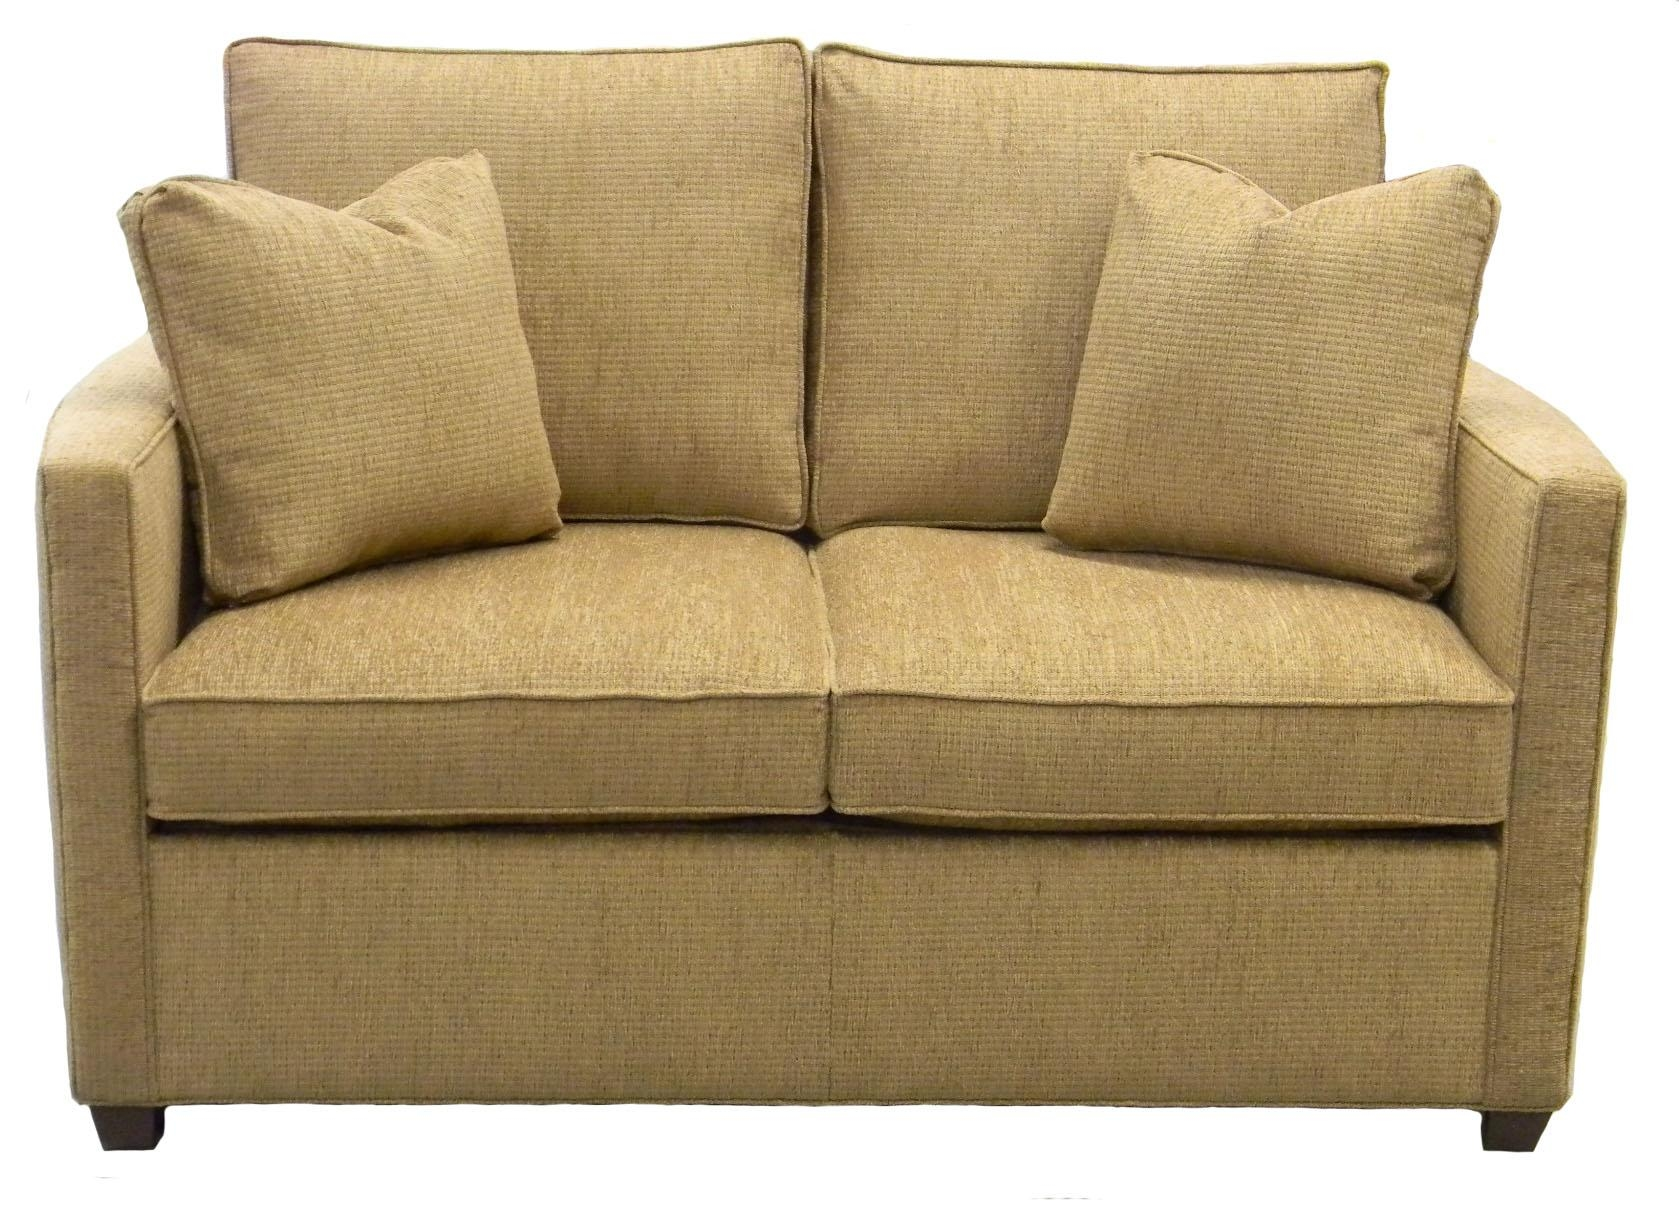 sleeper sofa charlotte nc living room ideas with grey sofas havertys best chair